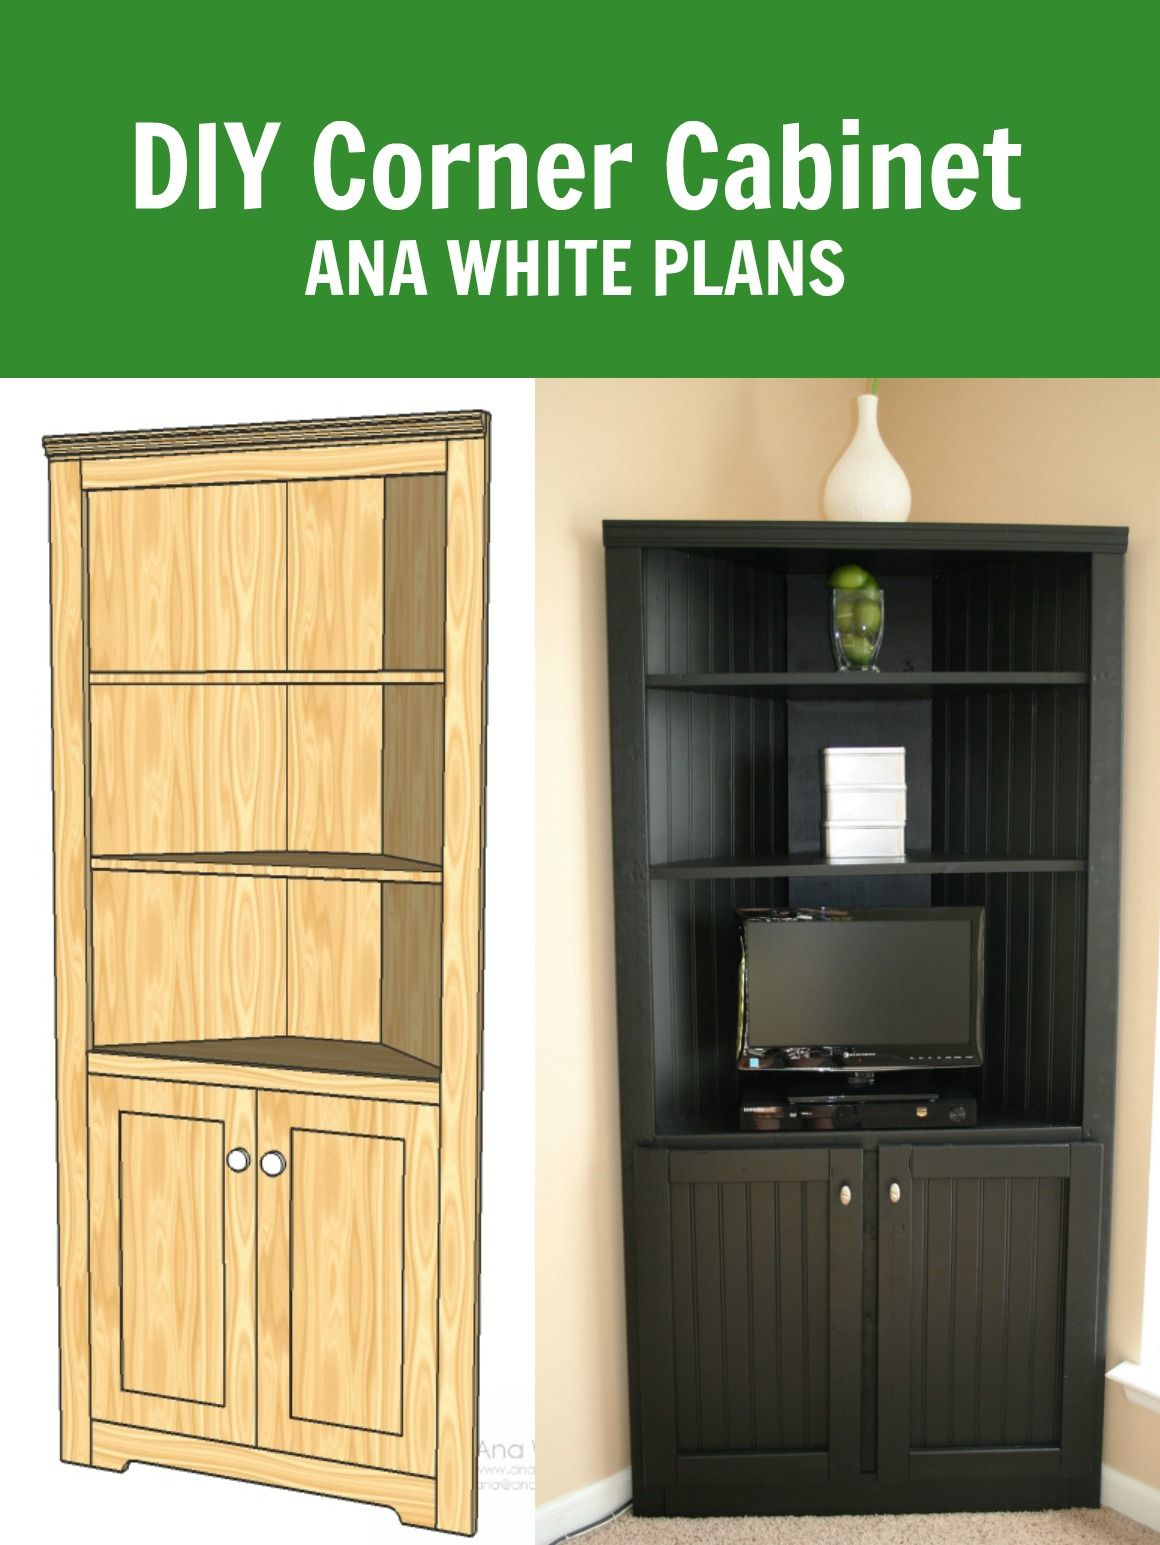 Surprising Ana White Corner Cabinet Storage Shelf Diy Projects Home Interior And Landscaping Oversignezvosmurscom